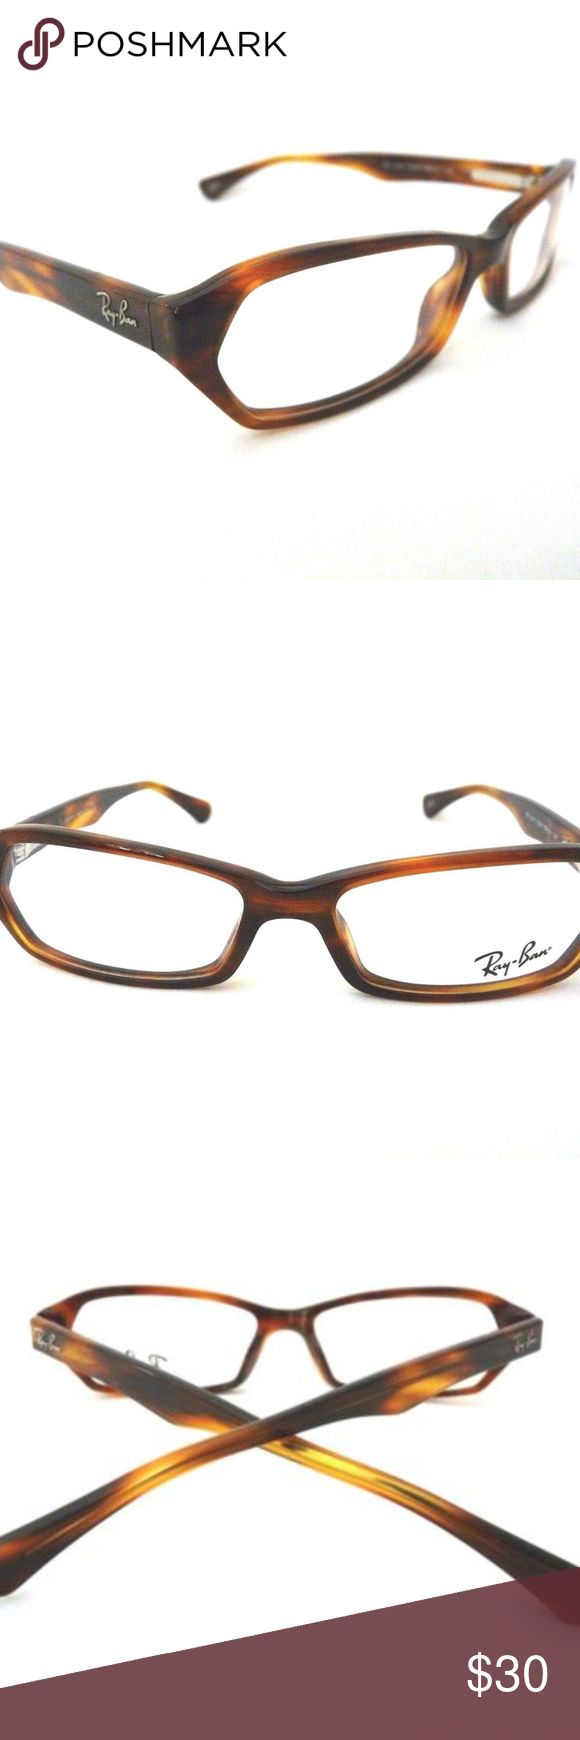 RAYBAN Tortoiseshell Havana RX Glasses Frames RAY BAN RB 5147 2144 BROWN WOMEN OPHTALMIC EYEGLASSES FRAME 53-15-140mm  Pre-owned frames in very good condition. Lenses will need to be replaced with your own prescription at the optometrist.   No case. Ray-Ban Accessories Glasses